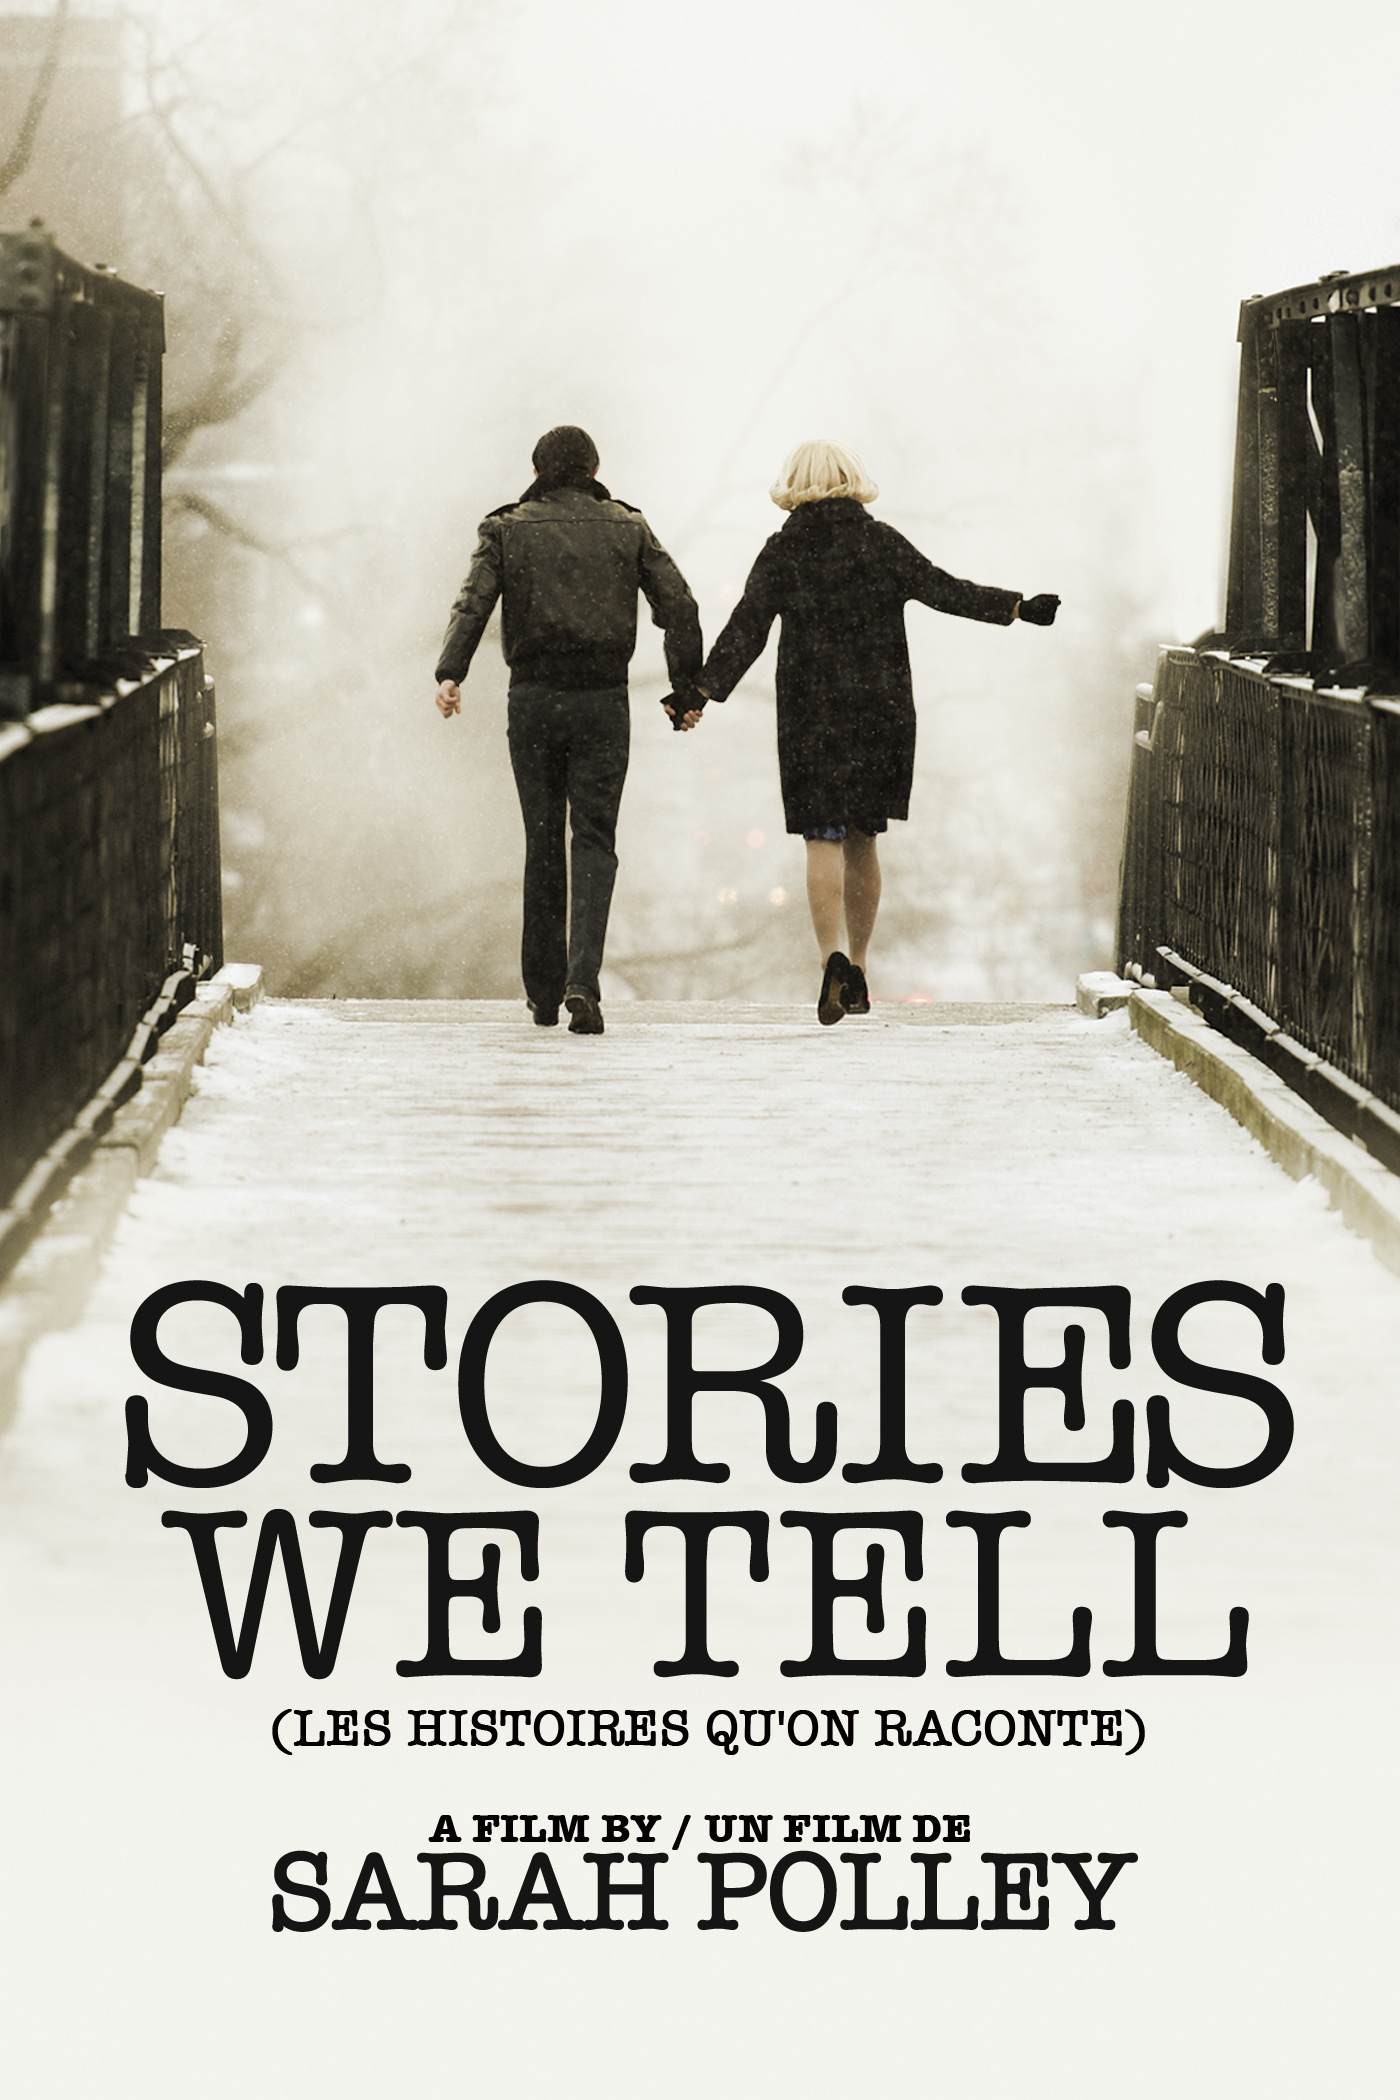 http://sites.stedwards.edu/comm4399fa2013-lspittl/files/2013/11/StoriesWeTell_iTunes_Poster-27awra0.jpg